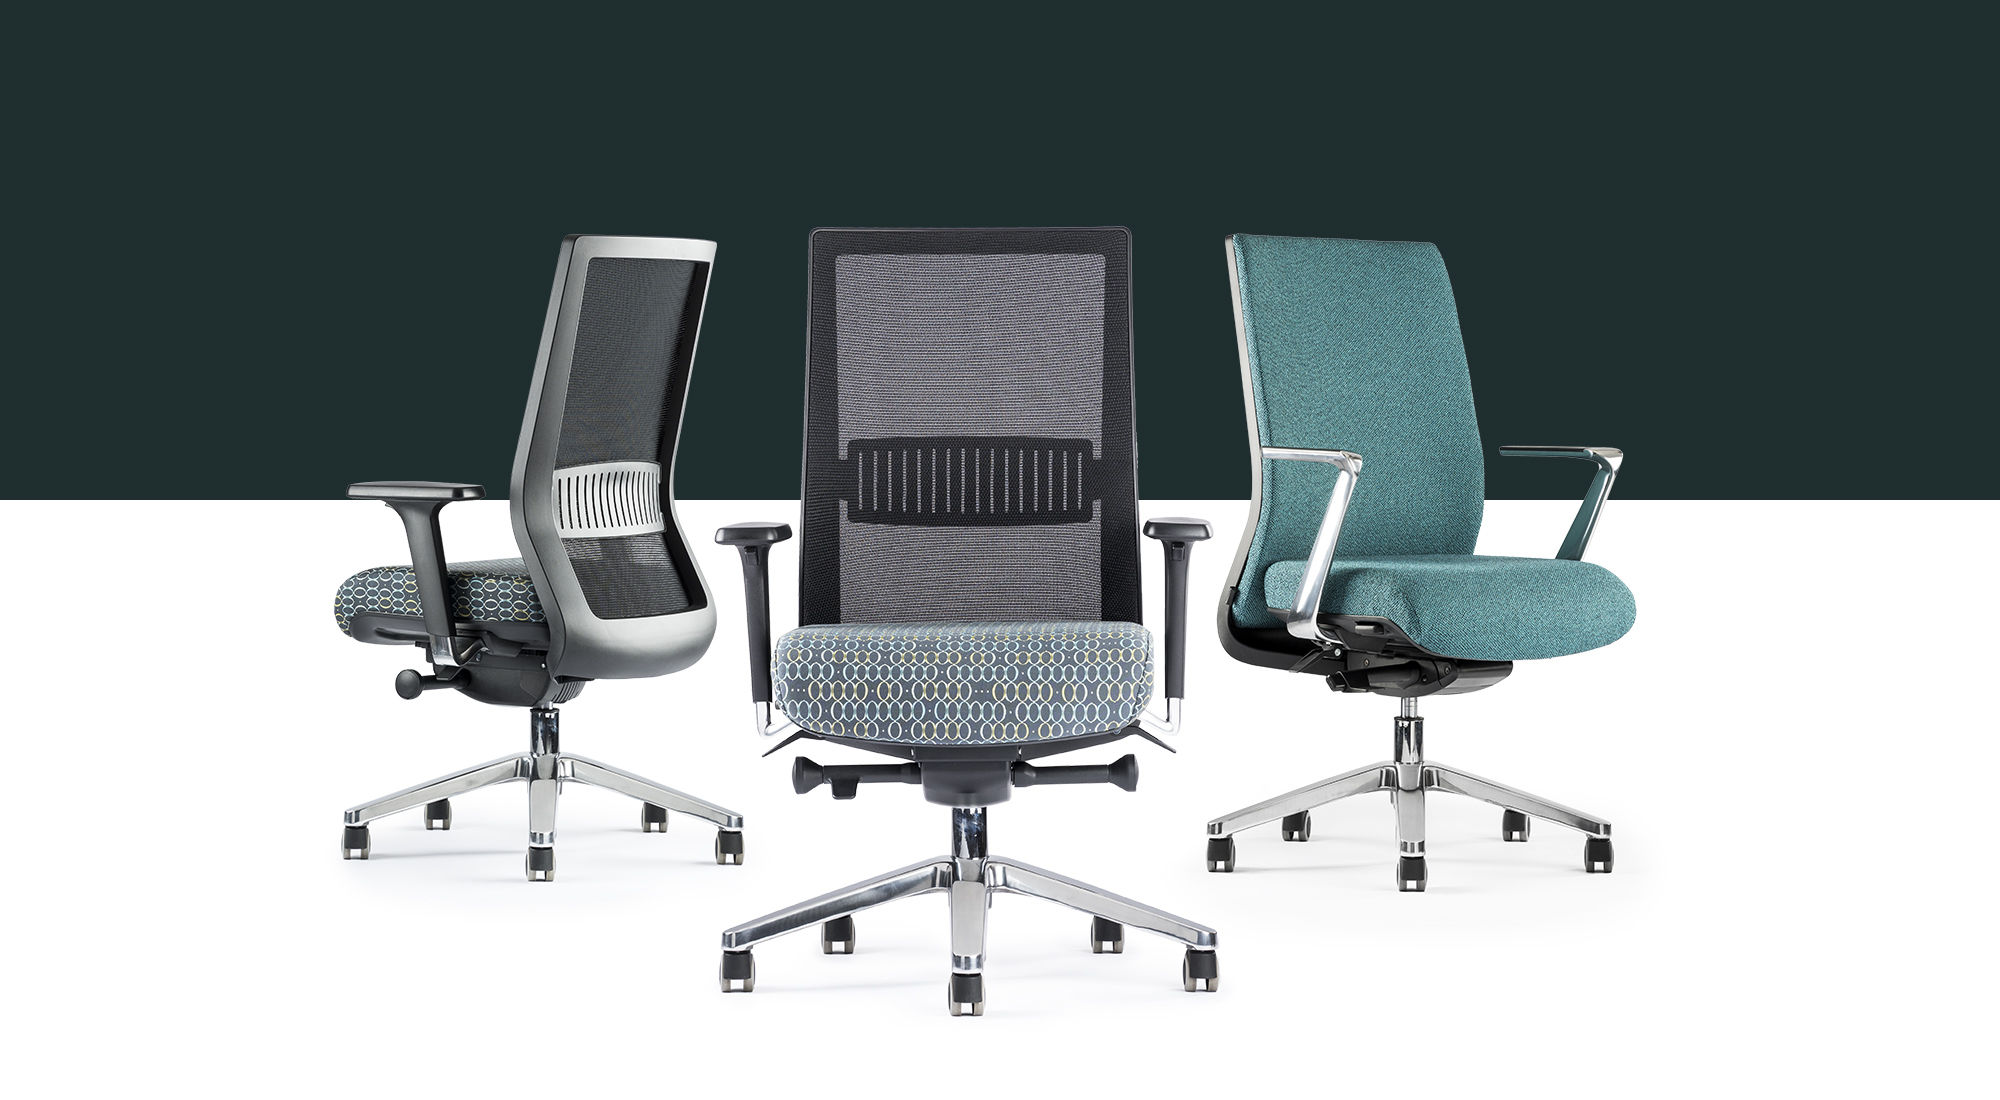 neutral posture chair review american office ergonomic seating and accessories ulius italian design meets comfort